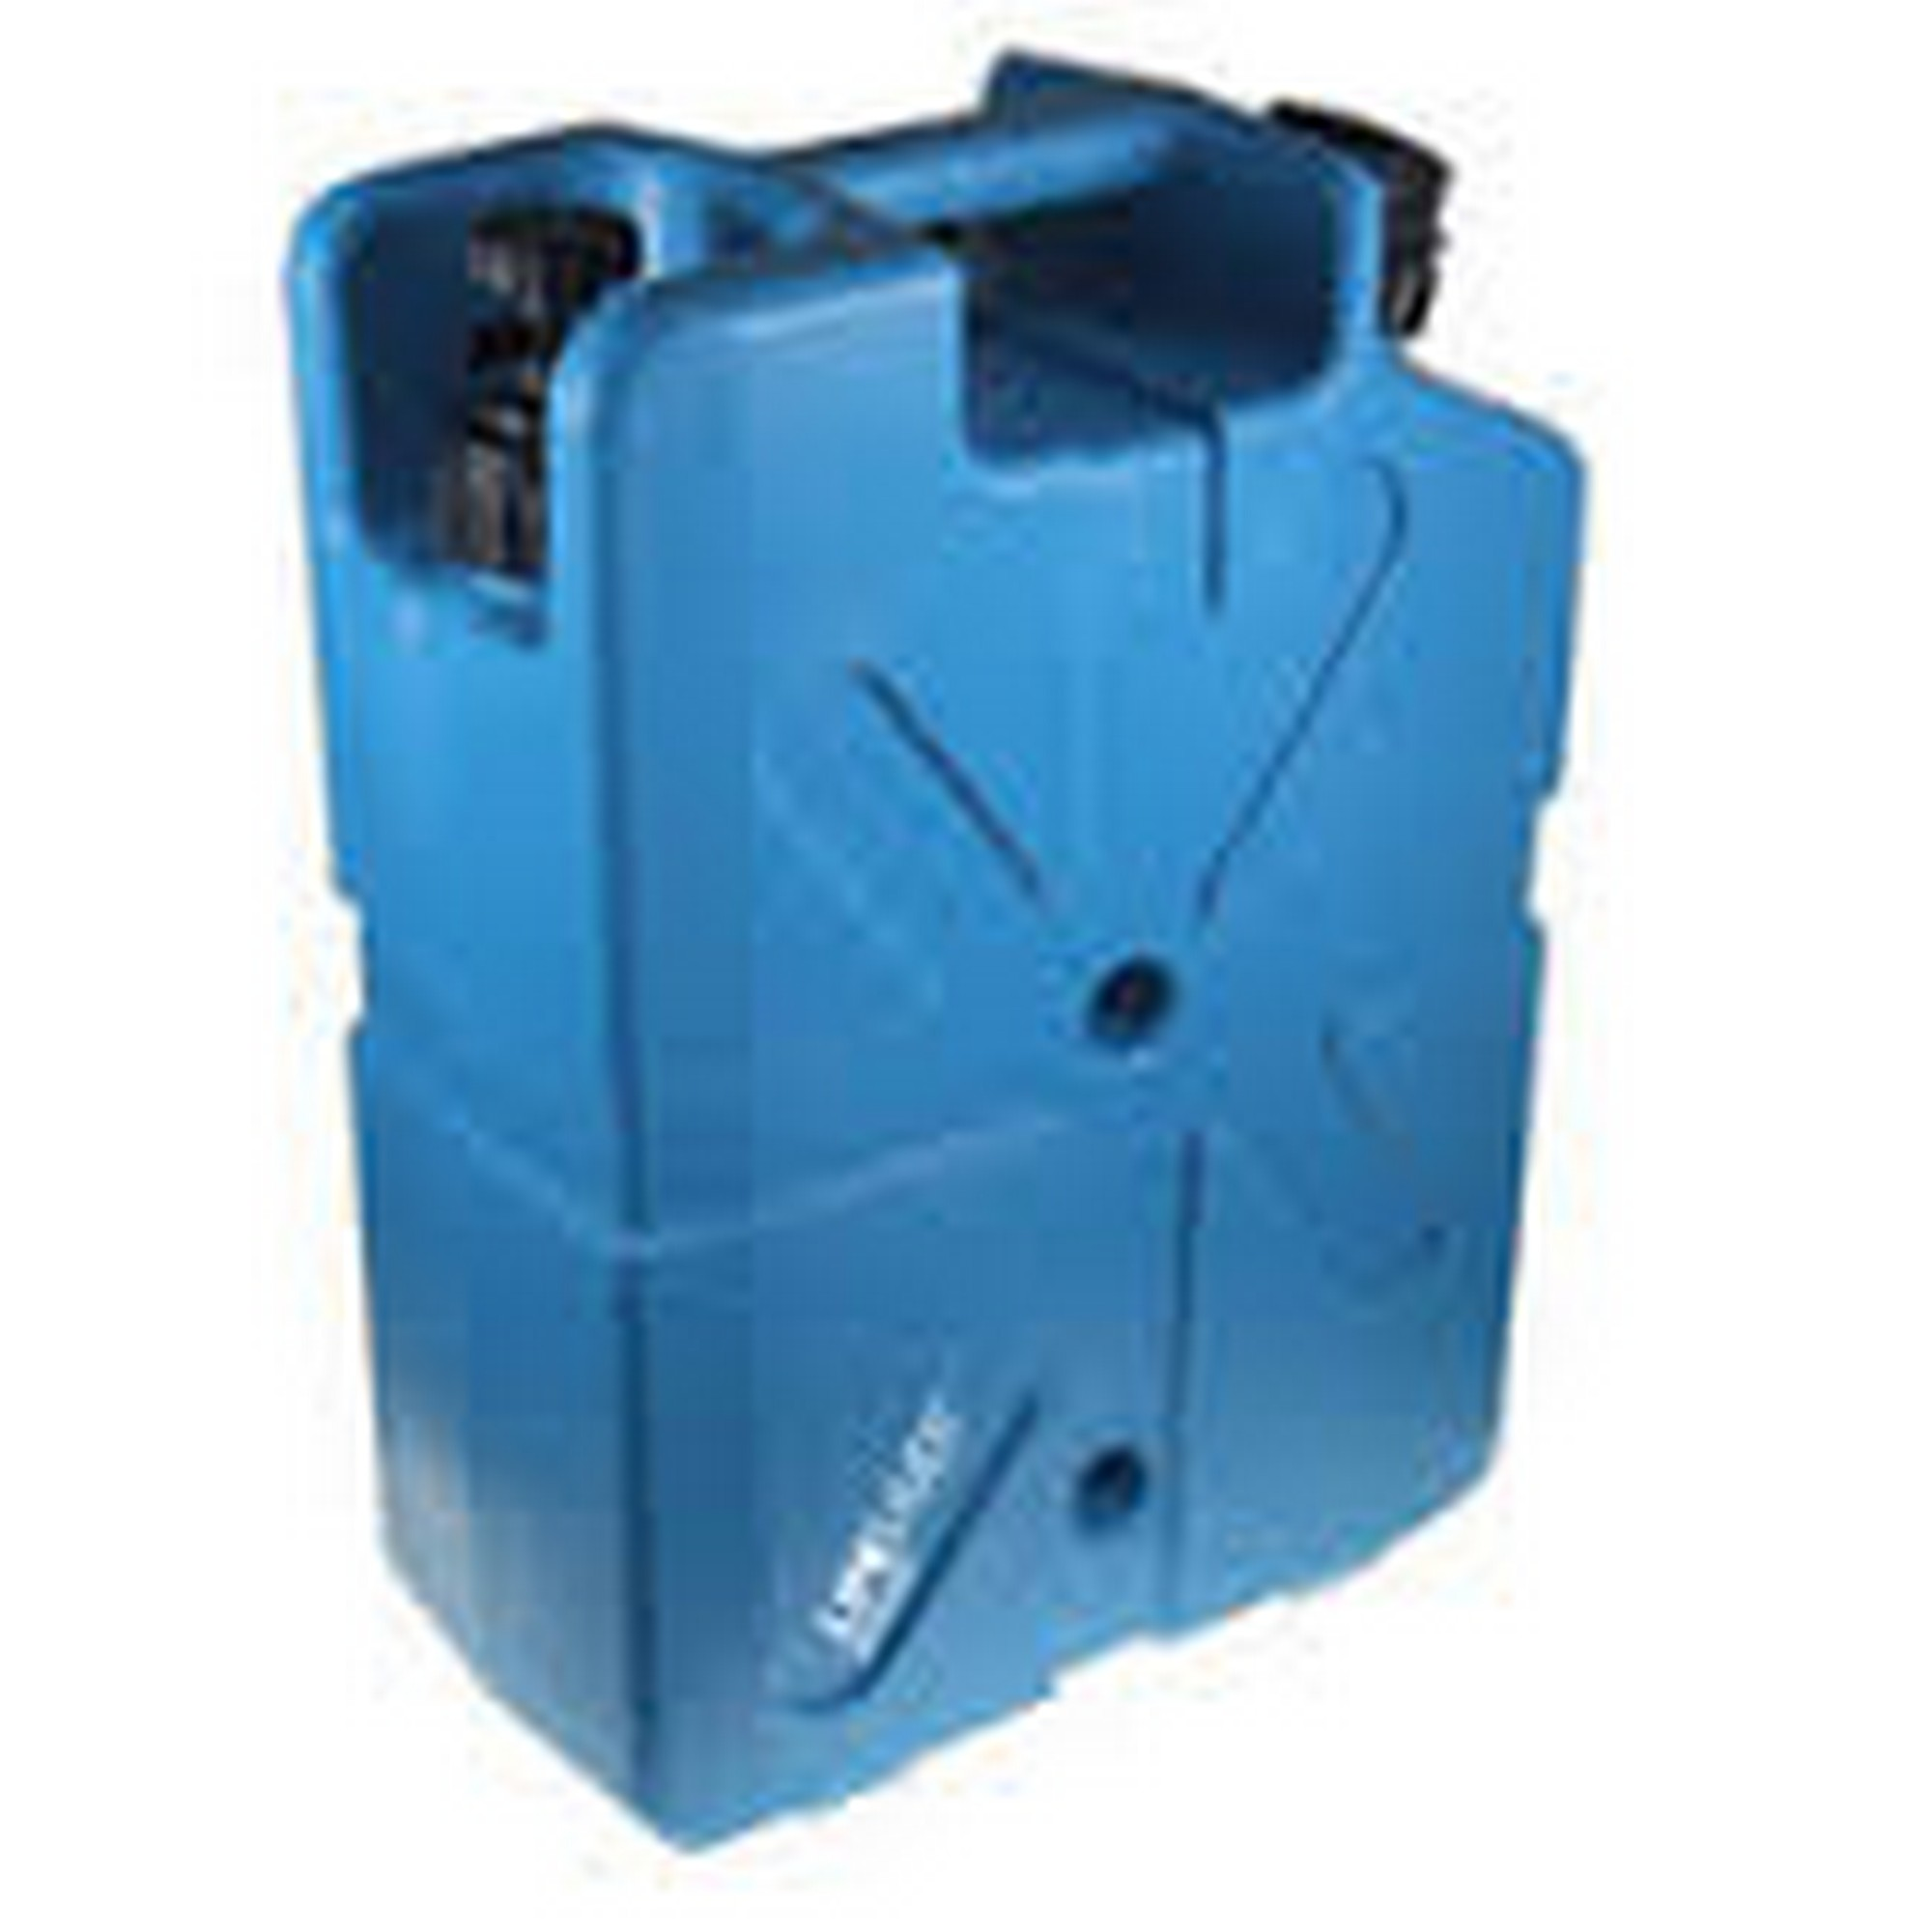 LIFESAVER Systems 10000 Ultra Filtration Jerrycan, Light Blue